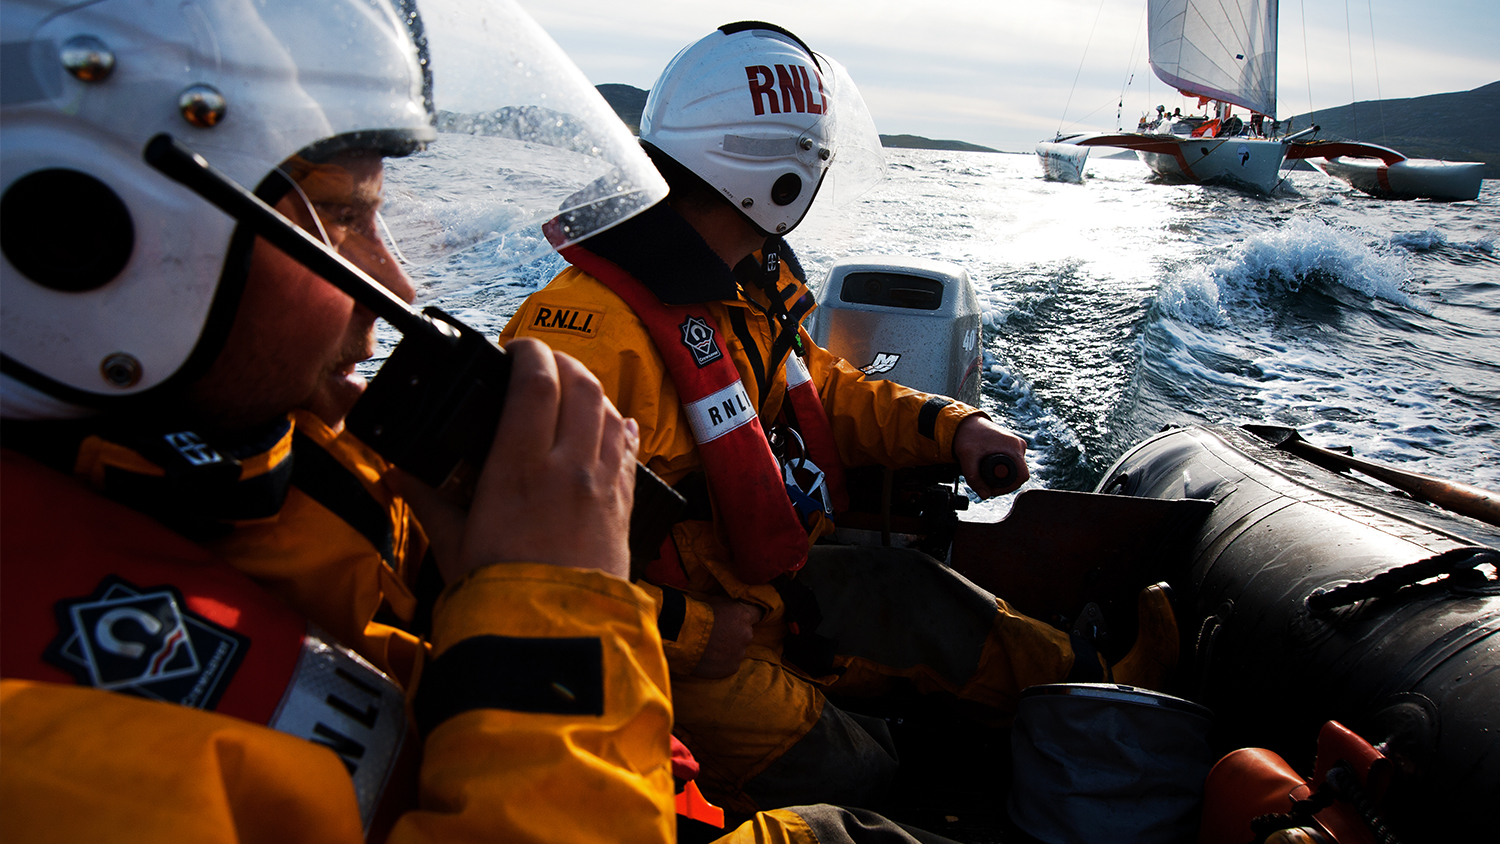 Volunteer lifeboat crew in action